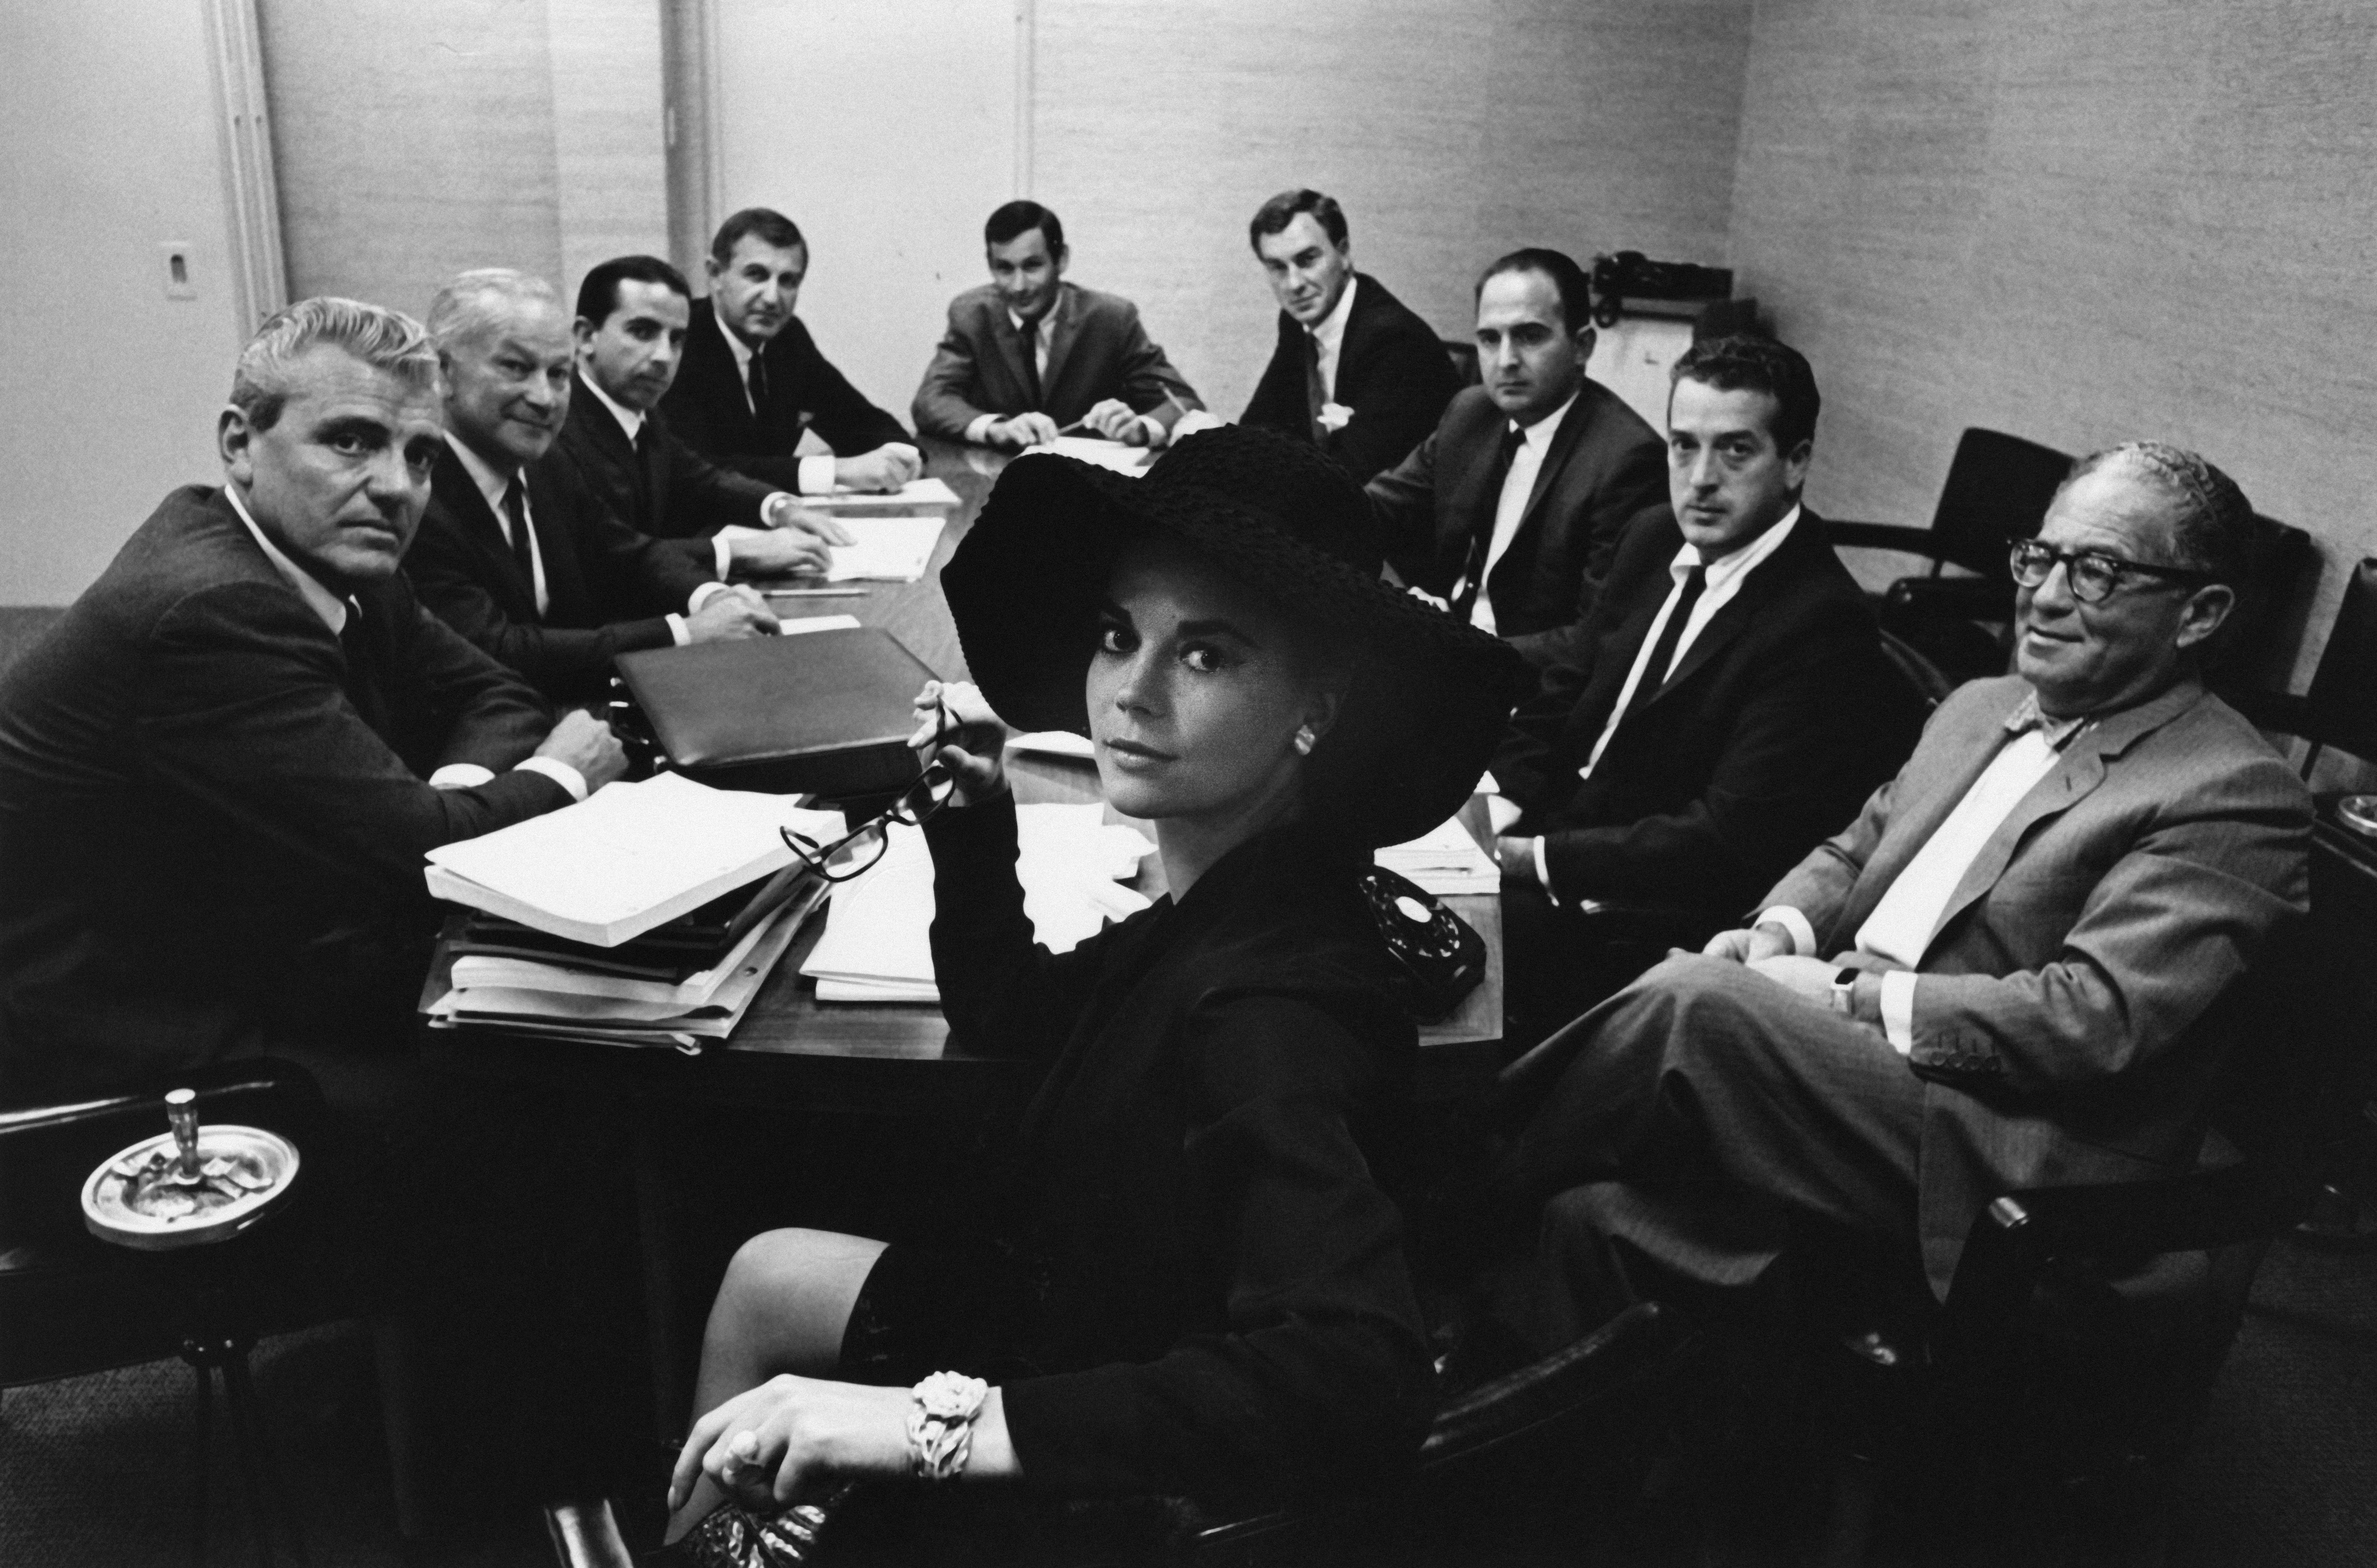 Natalie Wood (center) in a business meeting